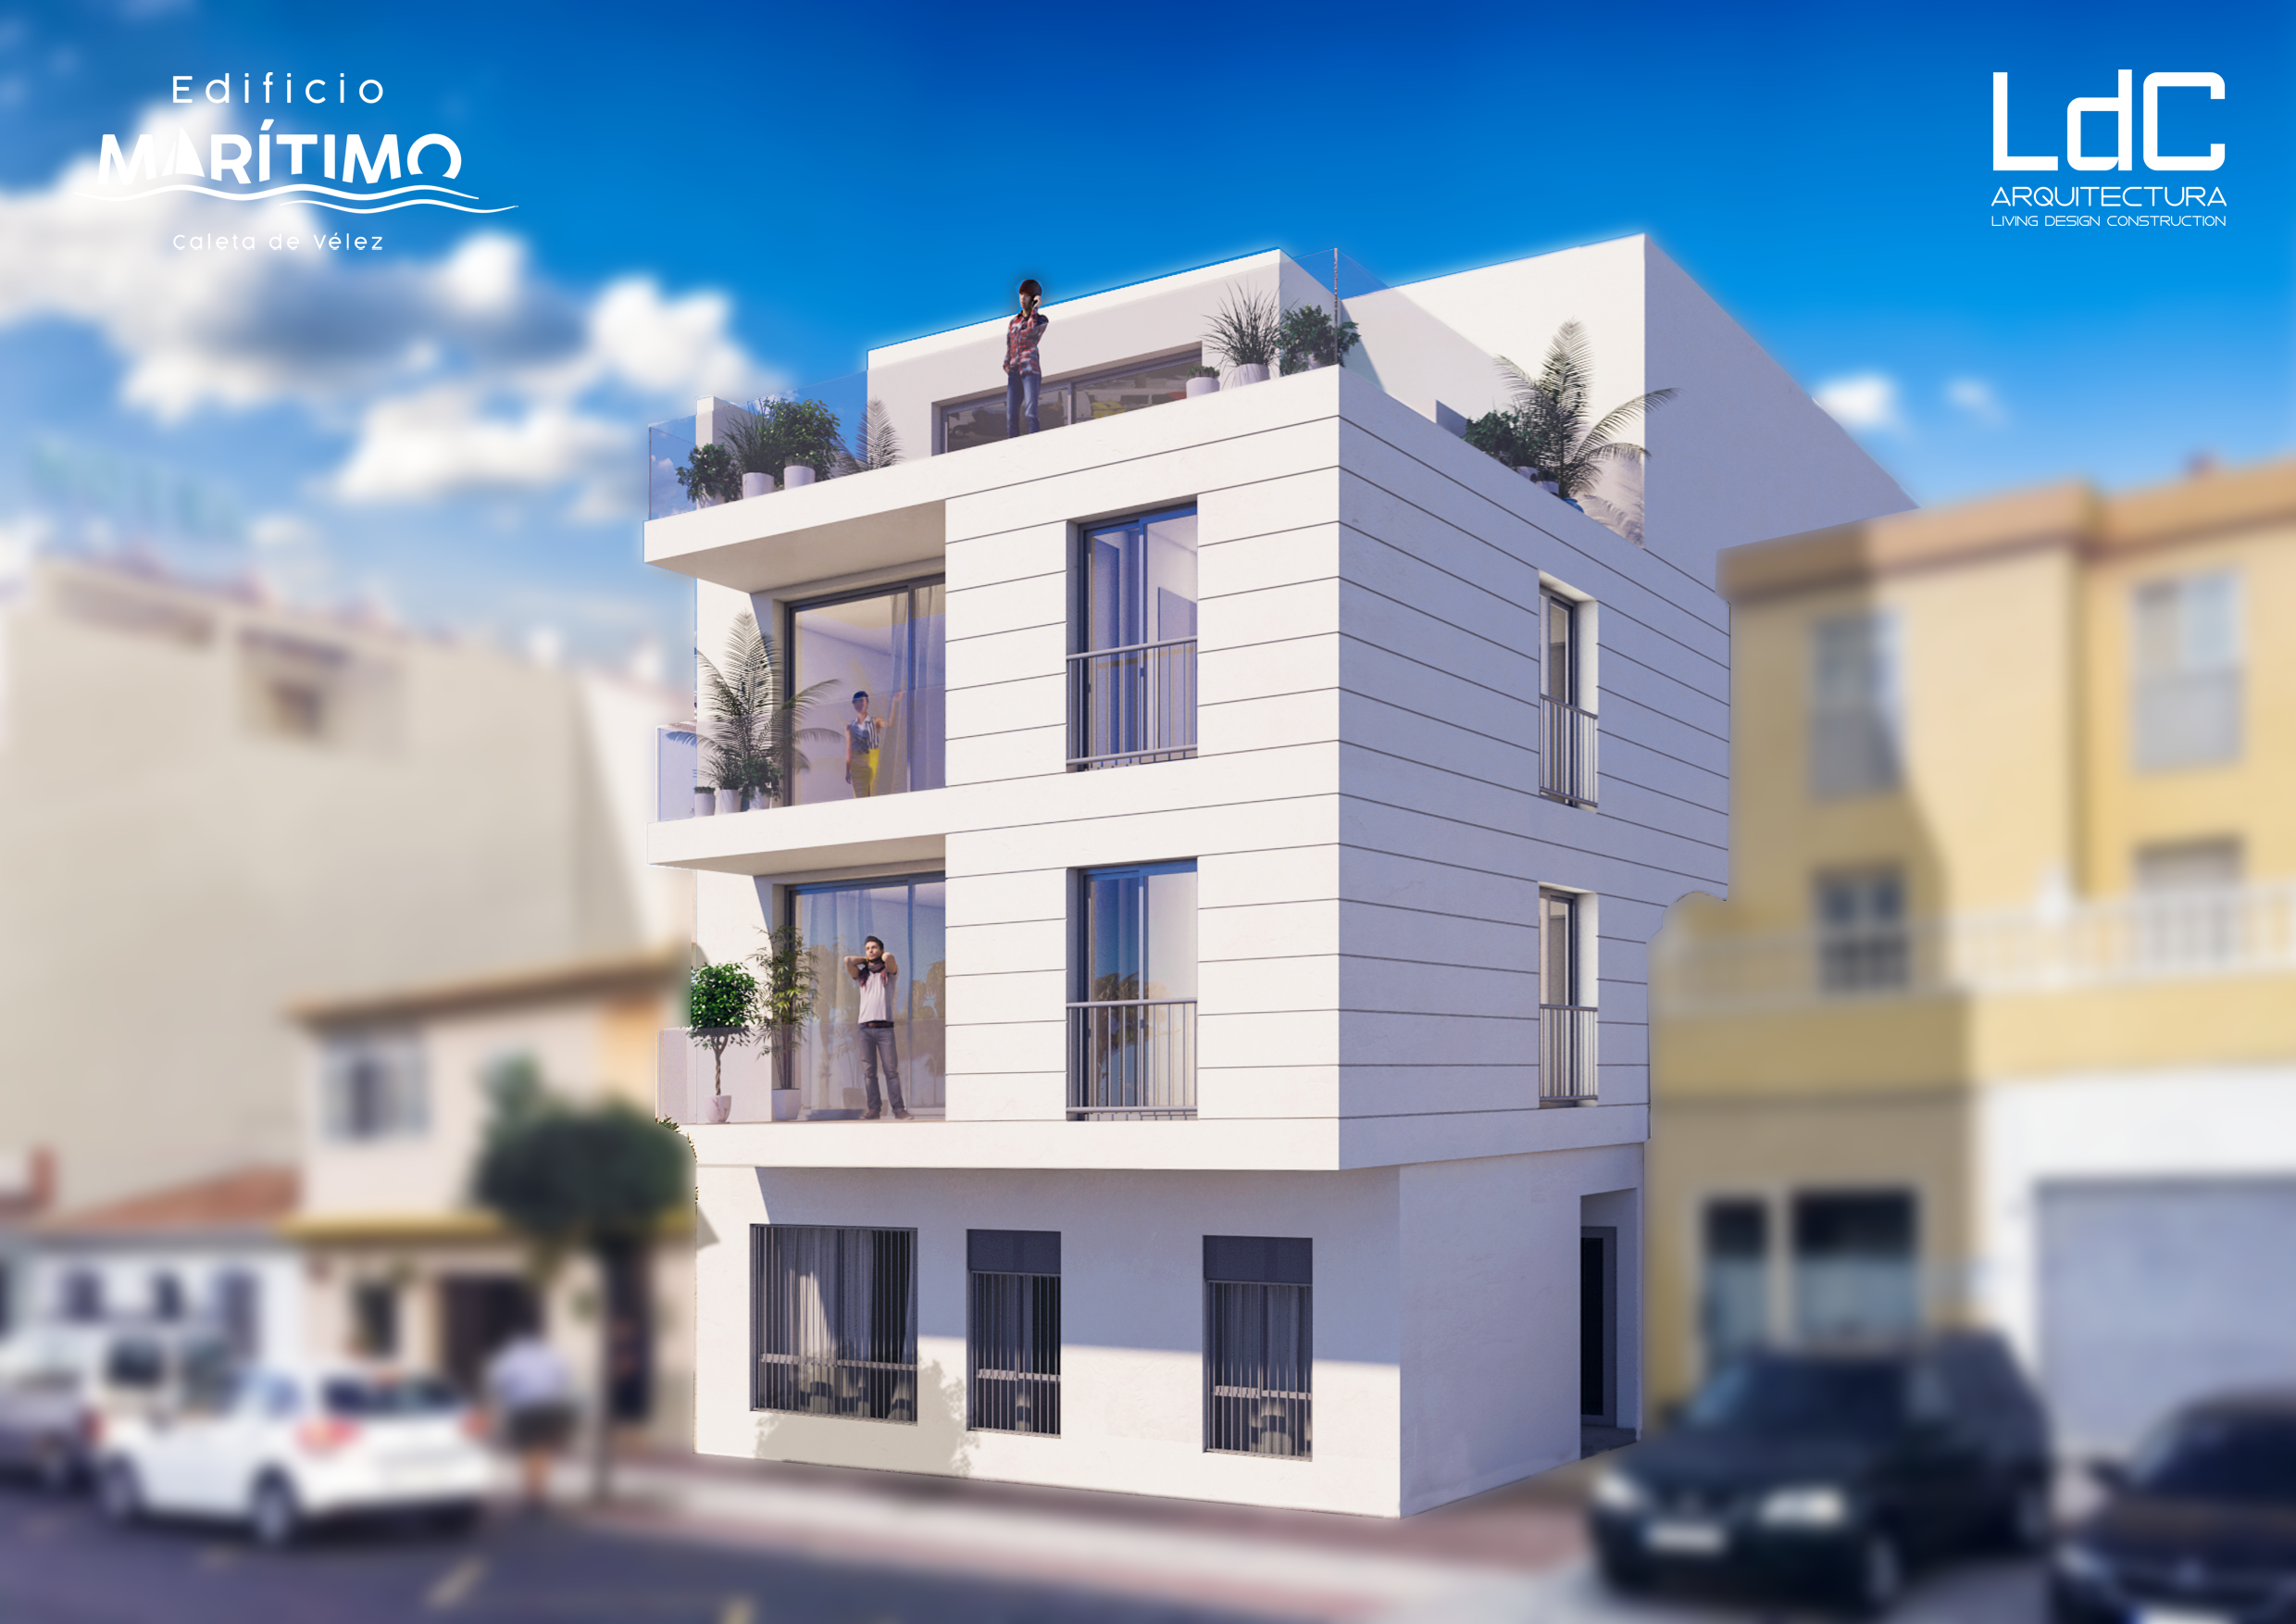 THESE NEW BUILD 1and 2 BED APARMENTS – FOR SALE – CALETA DE VELEZ.